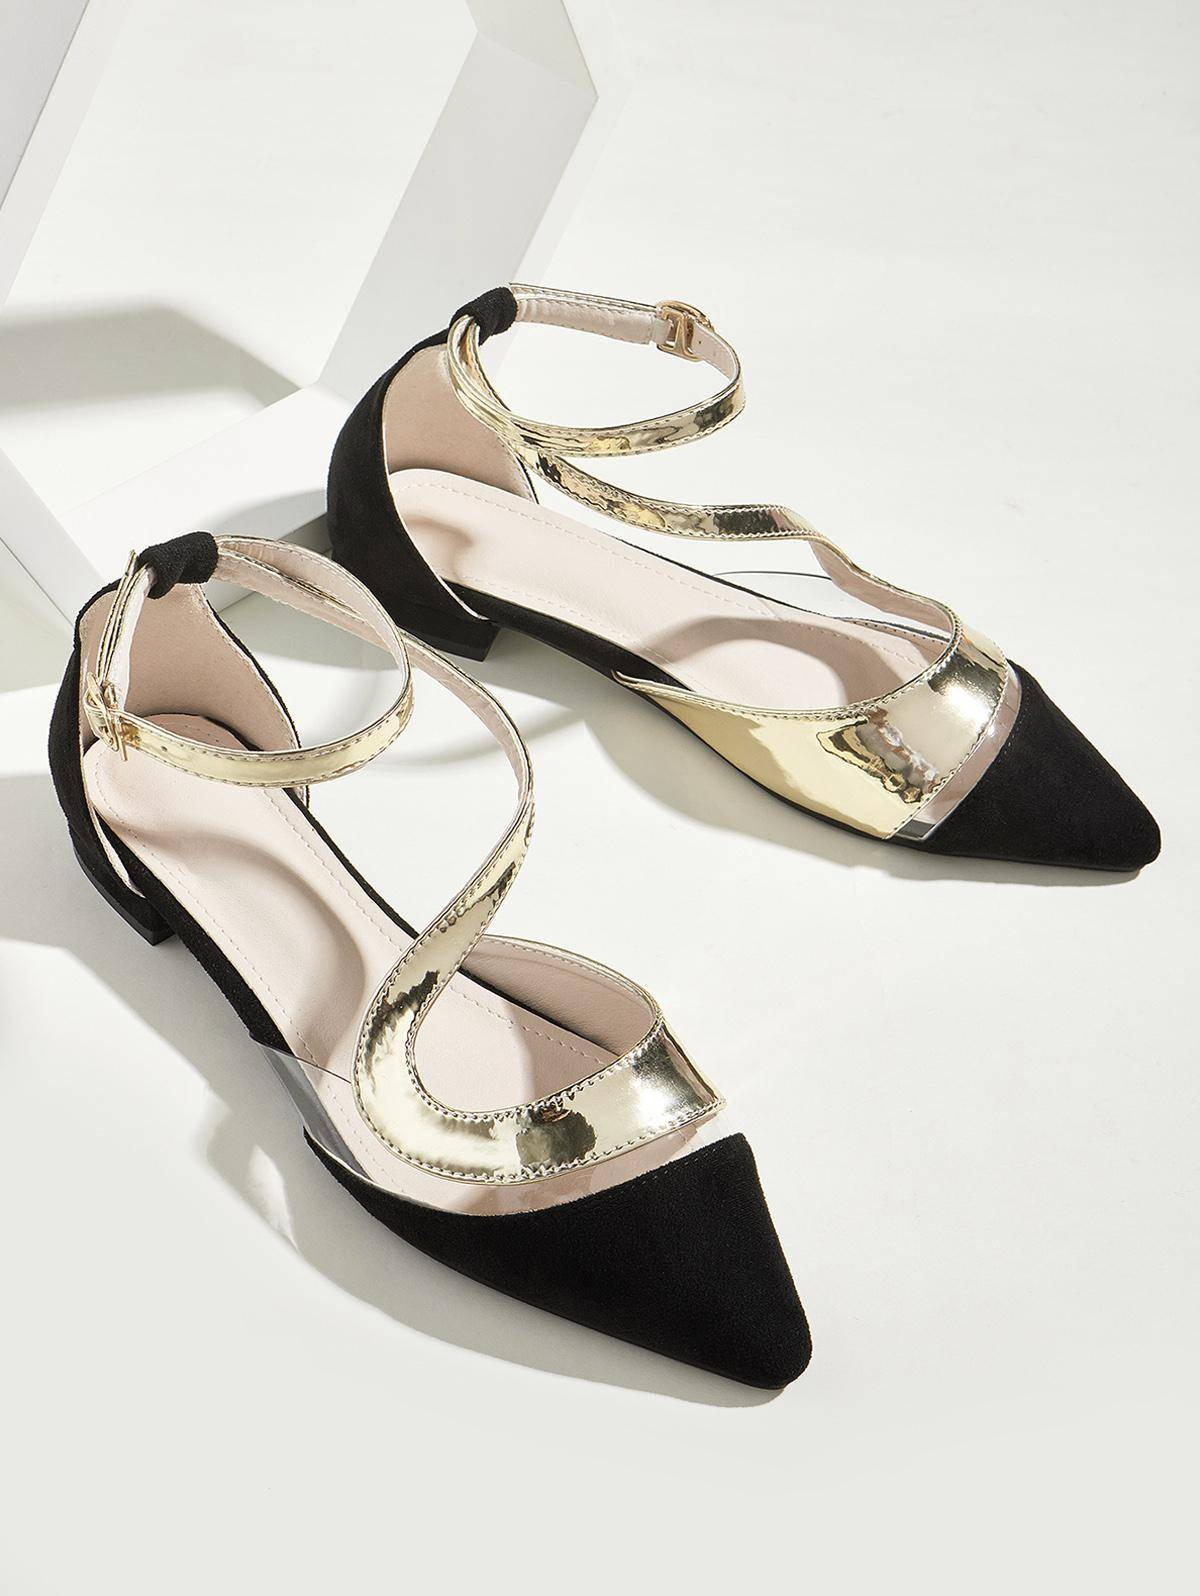 Transparent Panel Pointed Toe Ankle Strap Flat Shoes in BLACK - Size: EU 38